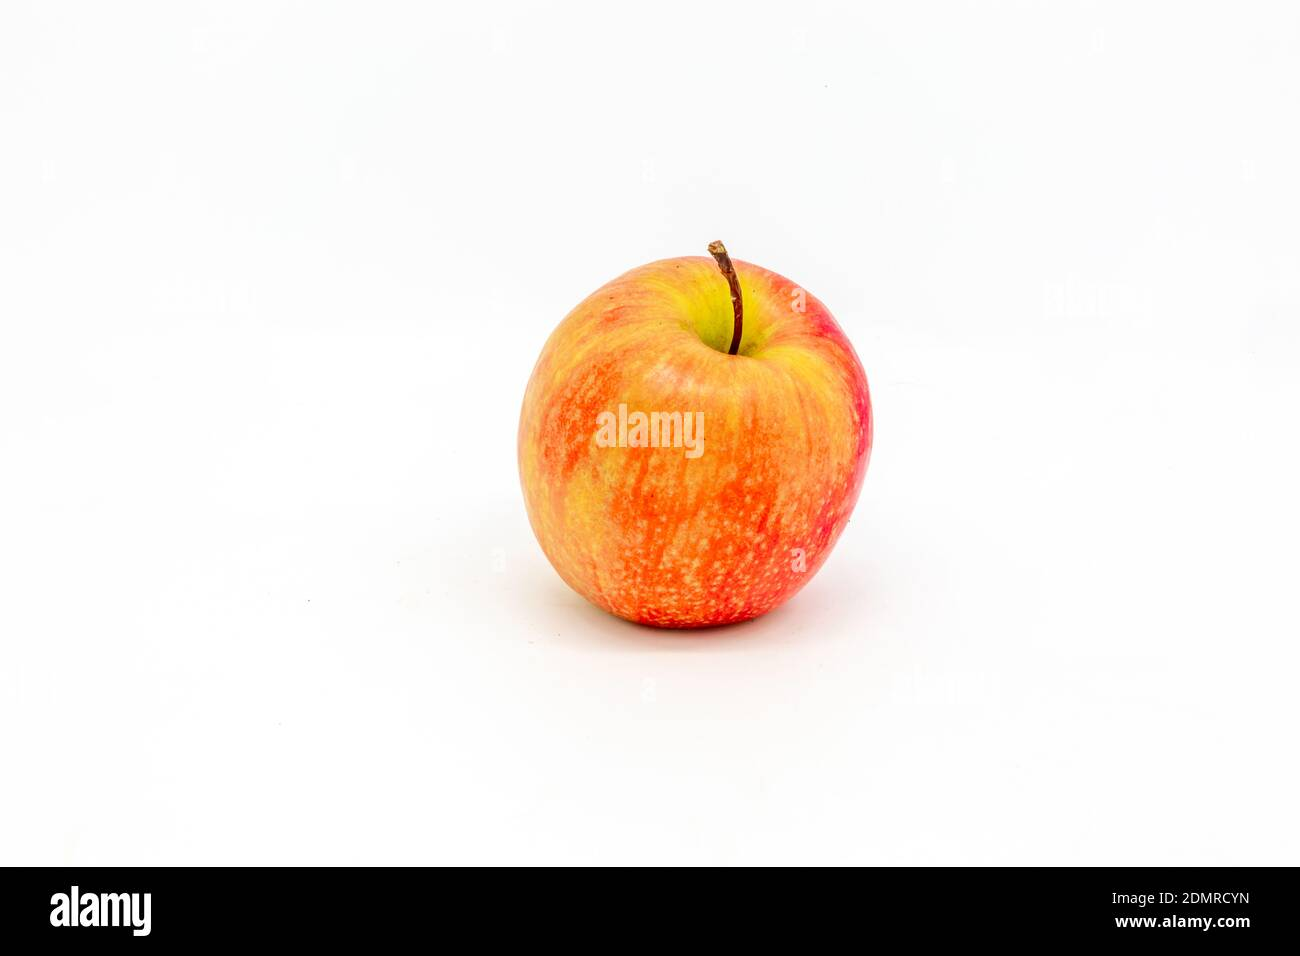 A studio shot of a whole apple, with a white background Stock Photo